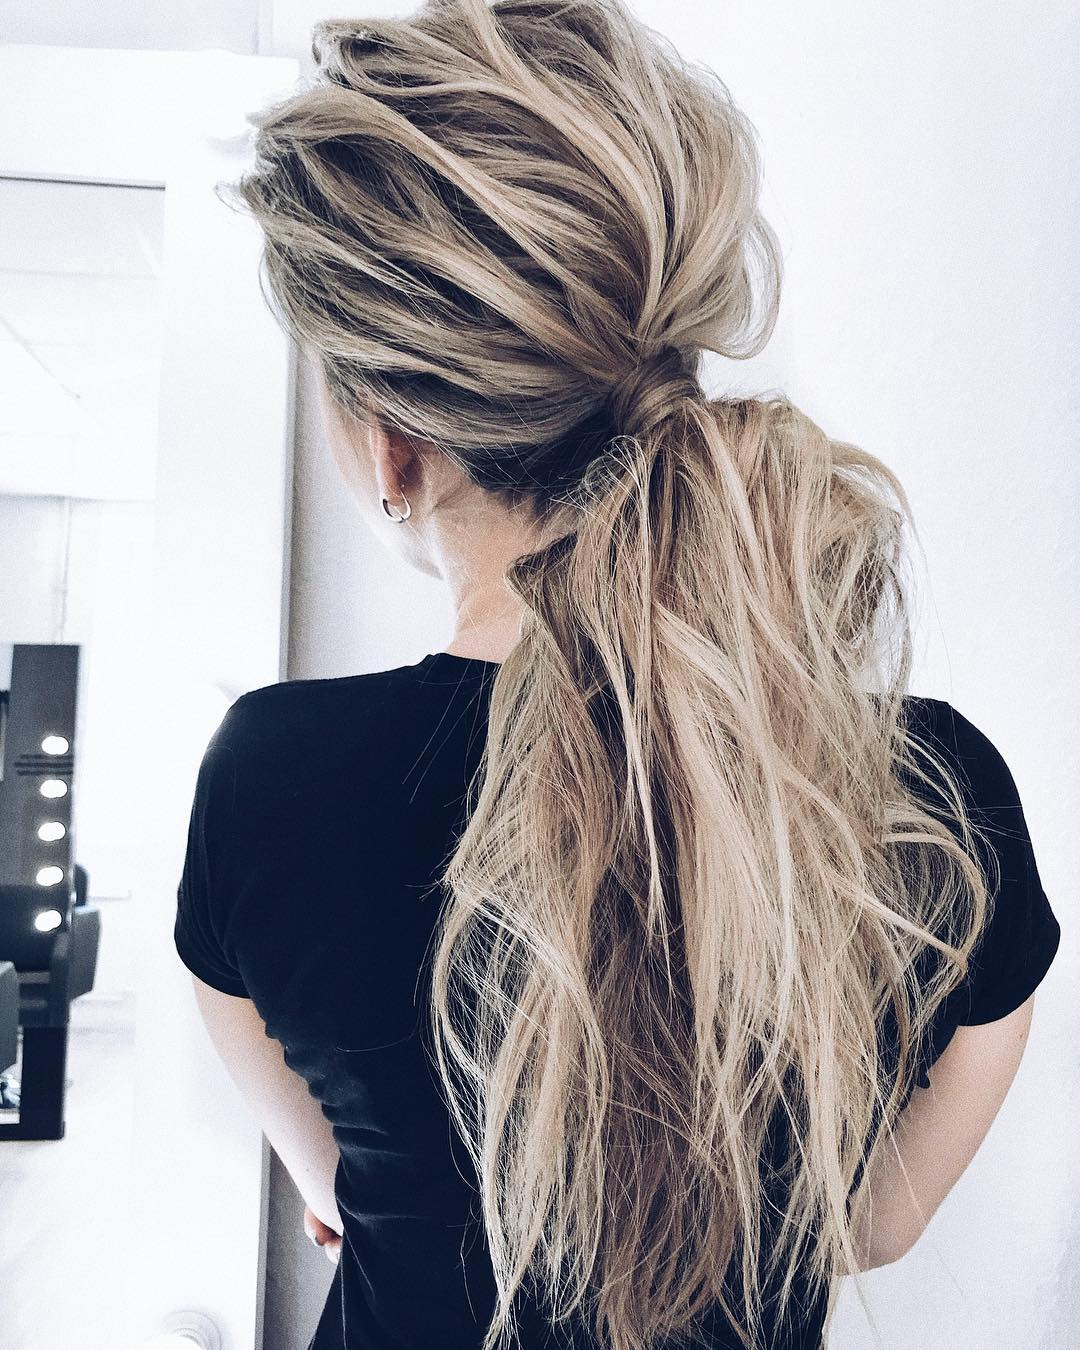 12 Creative Ponytail Hairstyles for Long Hair, Summer Hairstyle